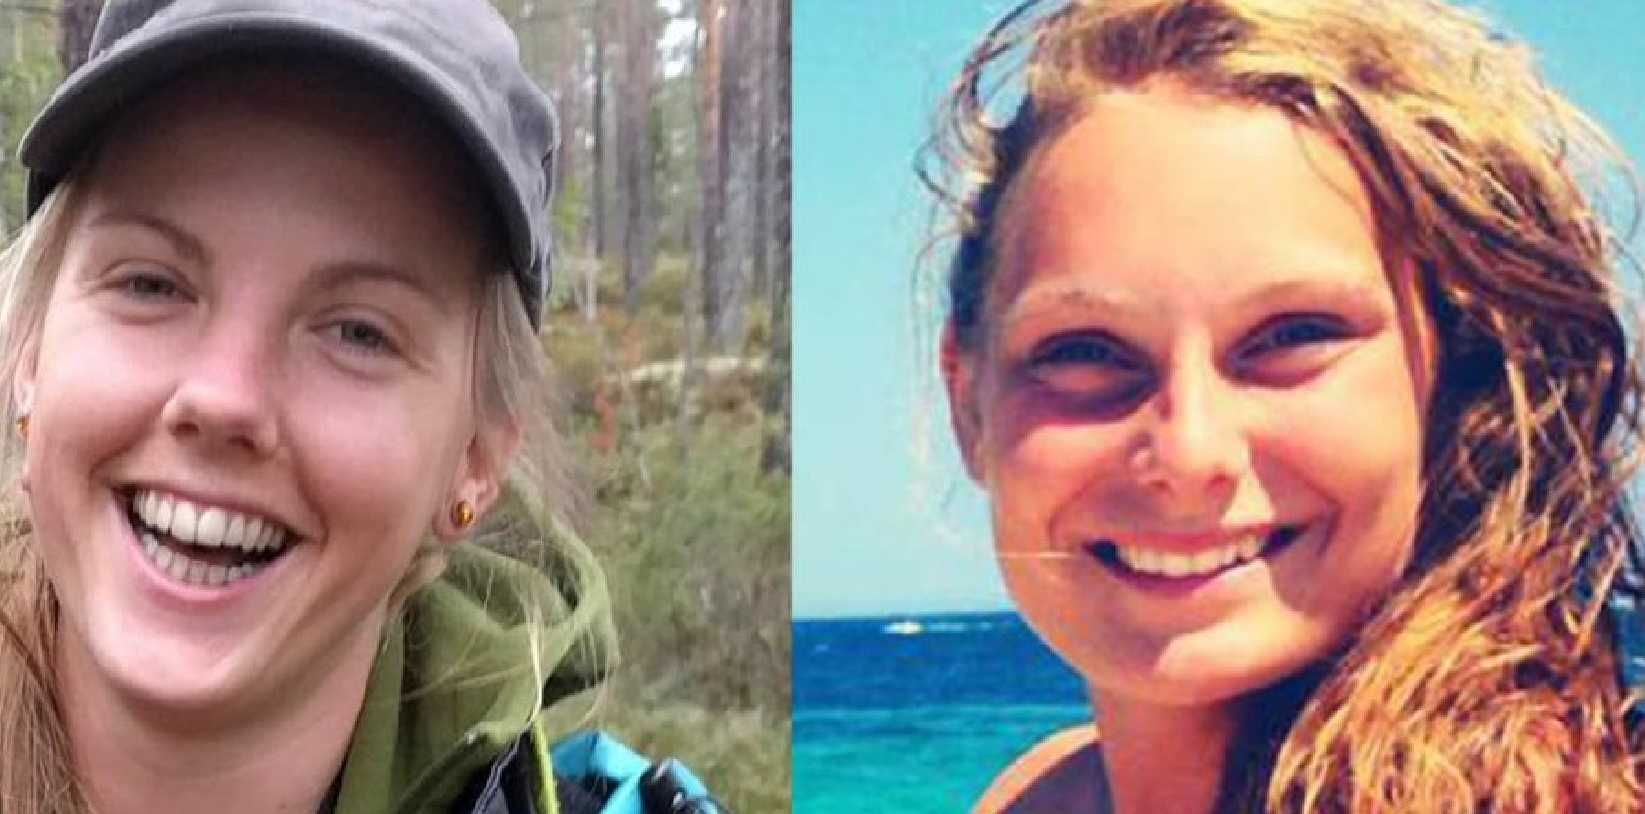 The families of murdered tourists Maren Ueland (left) and Louisa Jespersen have endured a viral video of their decapitation and images of their dead bodies posted to their Facebook pages. Picture: Facebook